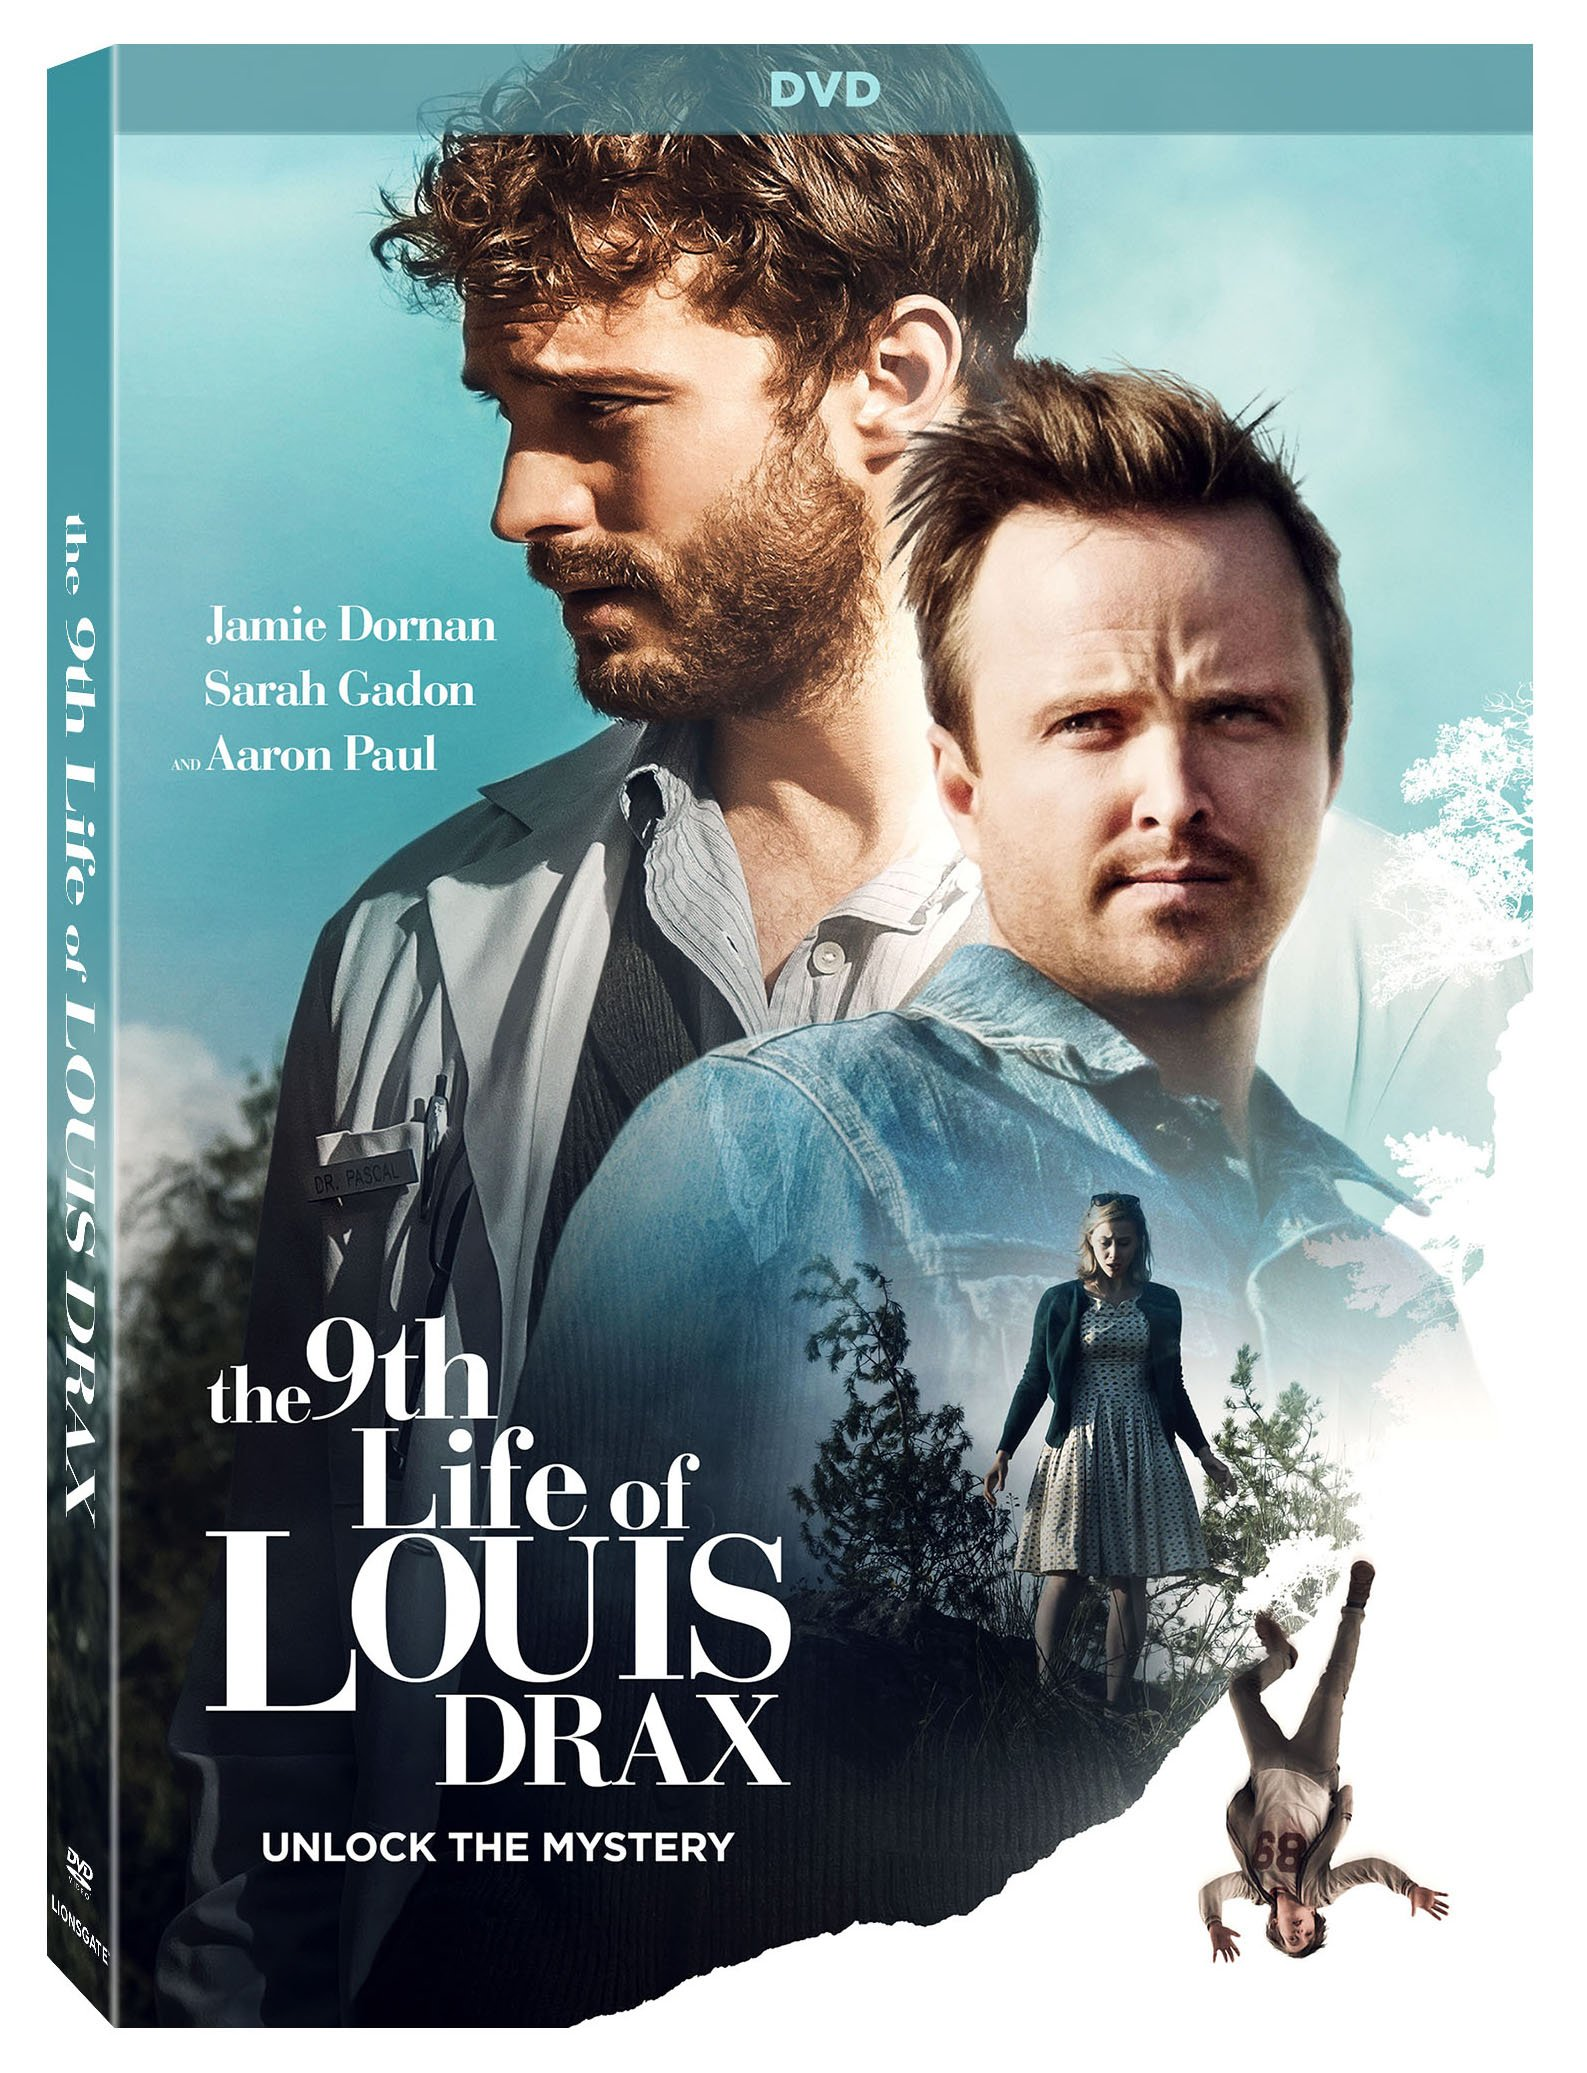 DVD : The 9th Life of Louis Drax (DVD)